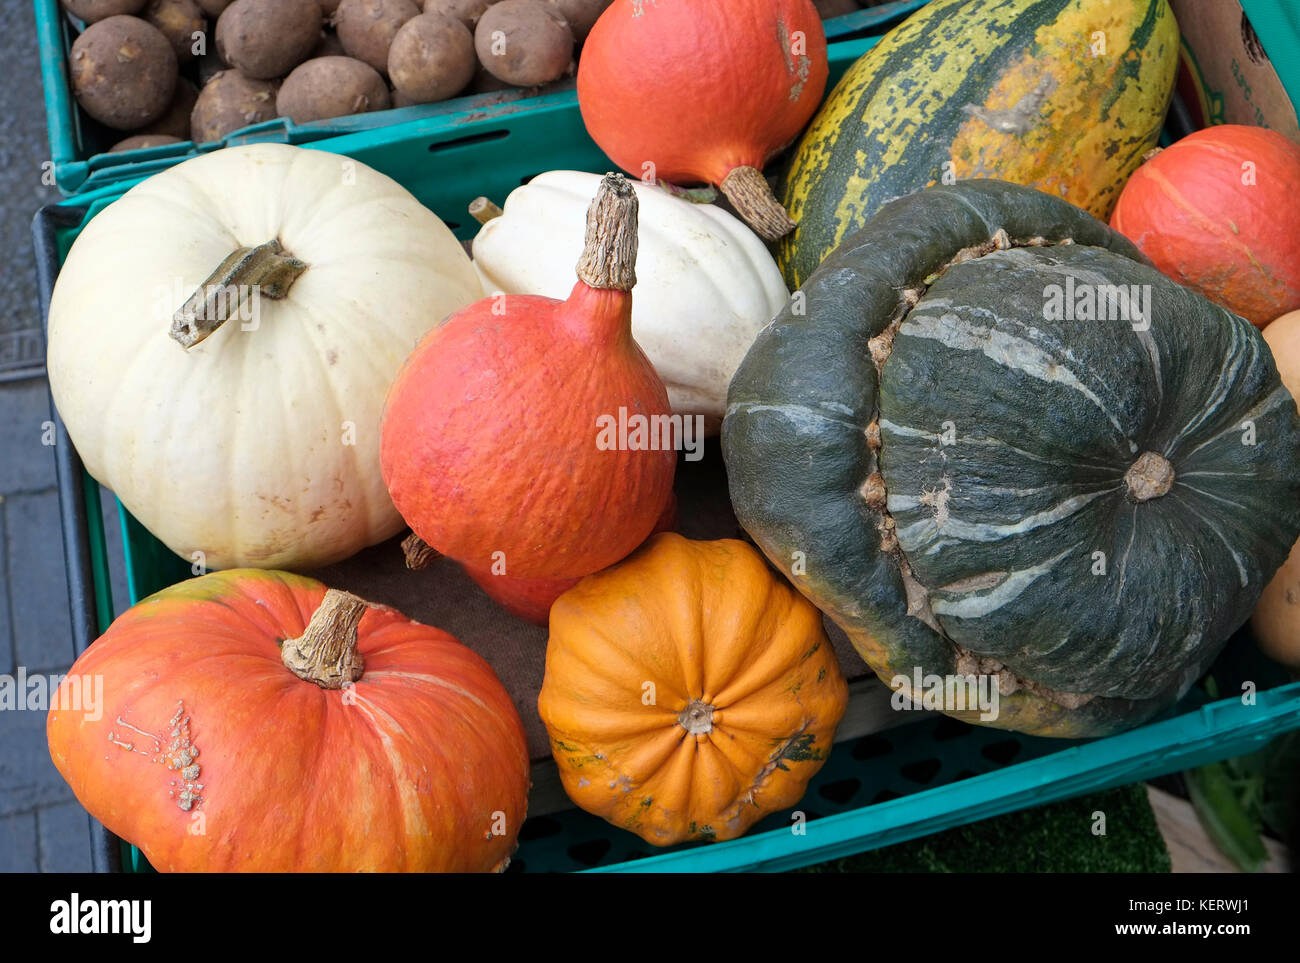 selection of gourds outside greengrocers store, fakenham, norfolk, england - Stock Image